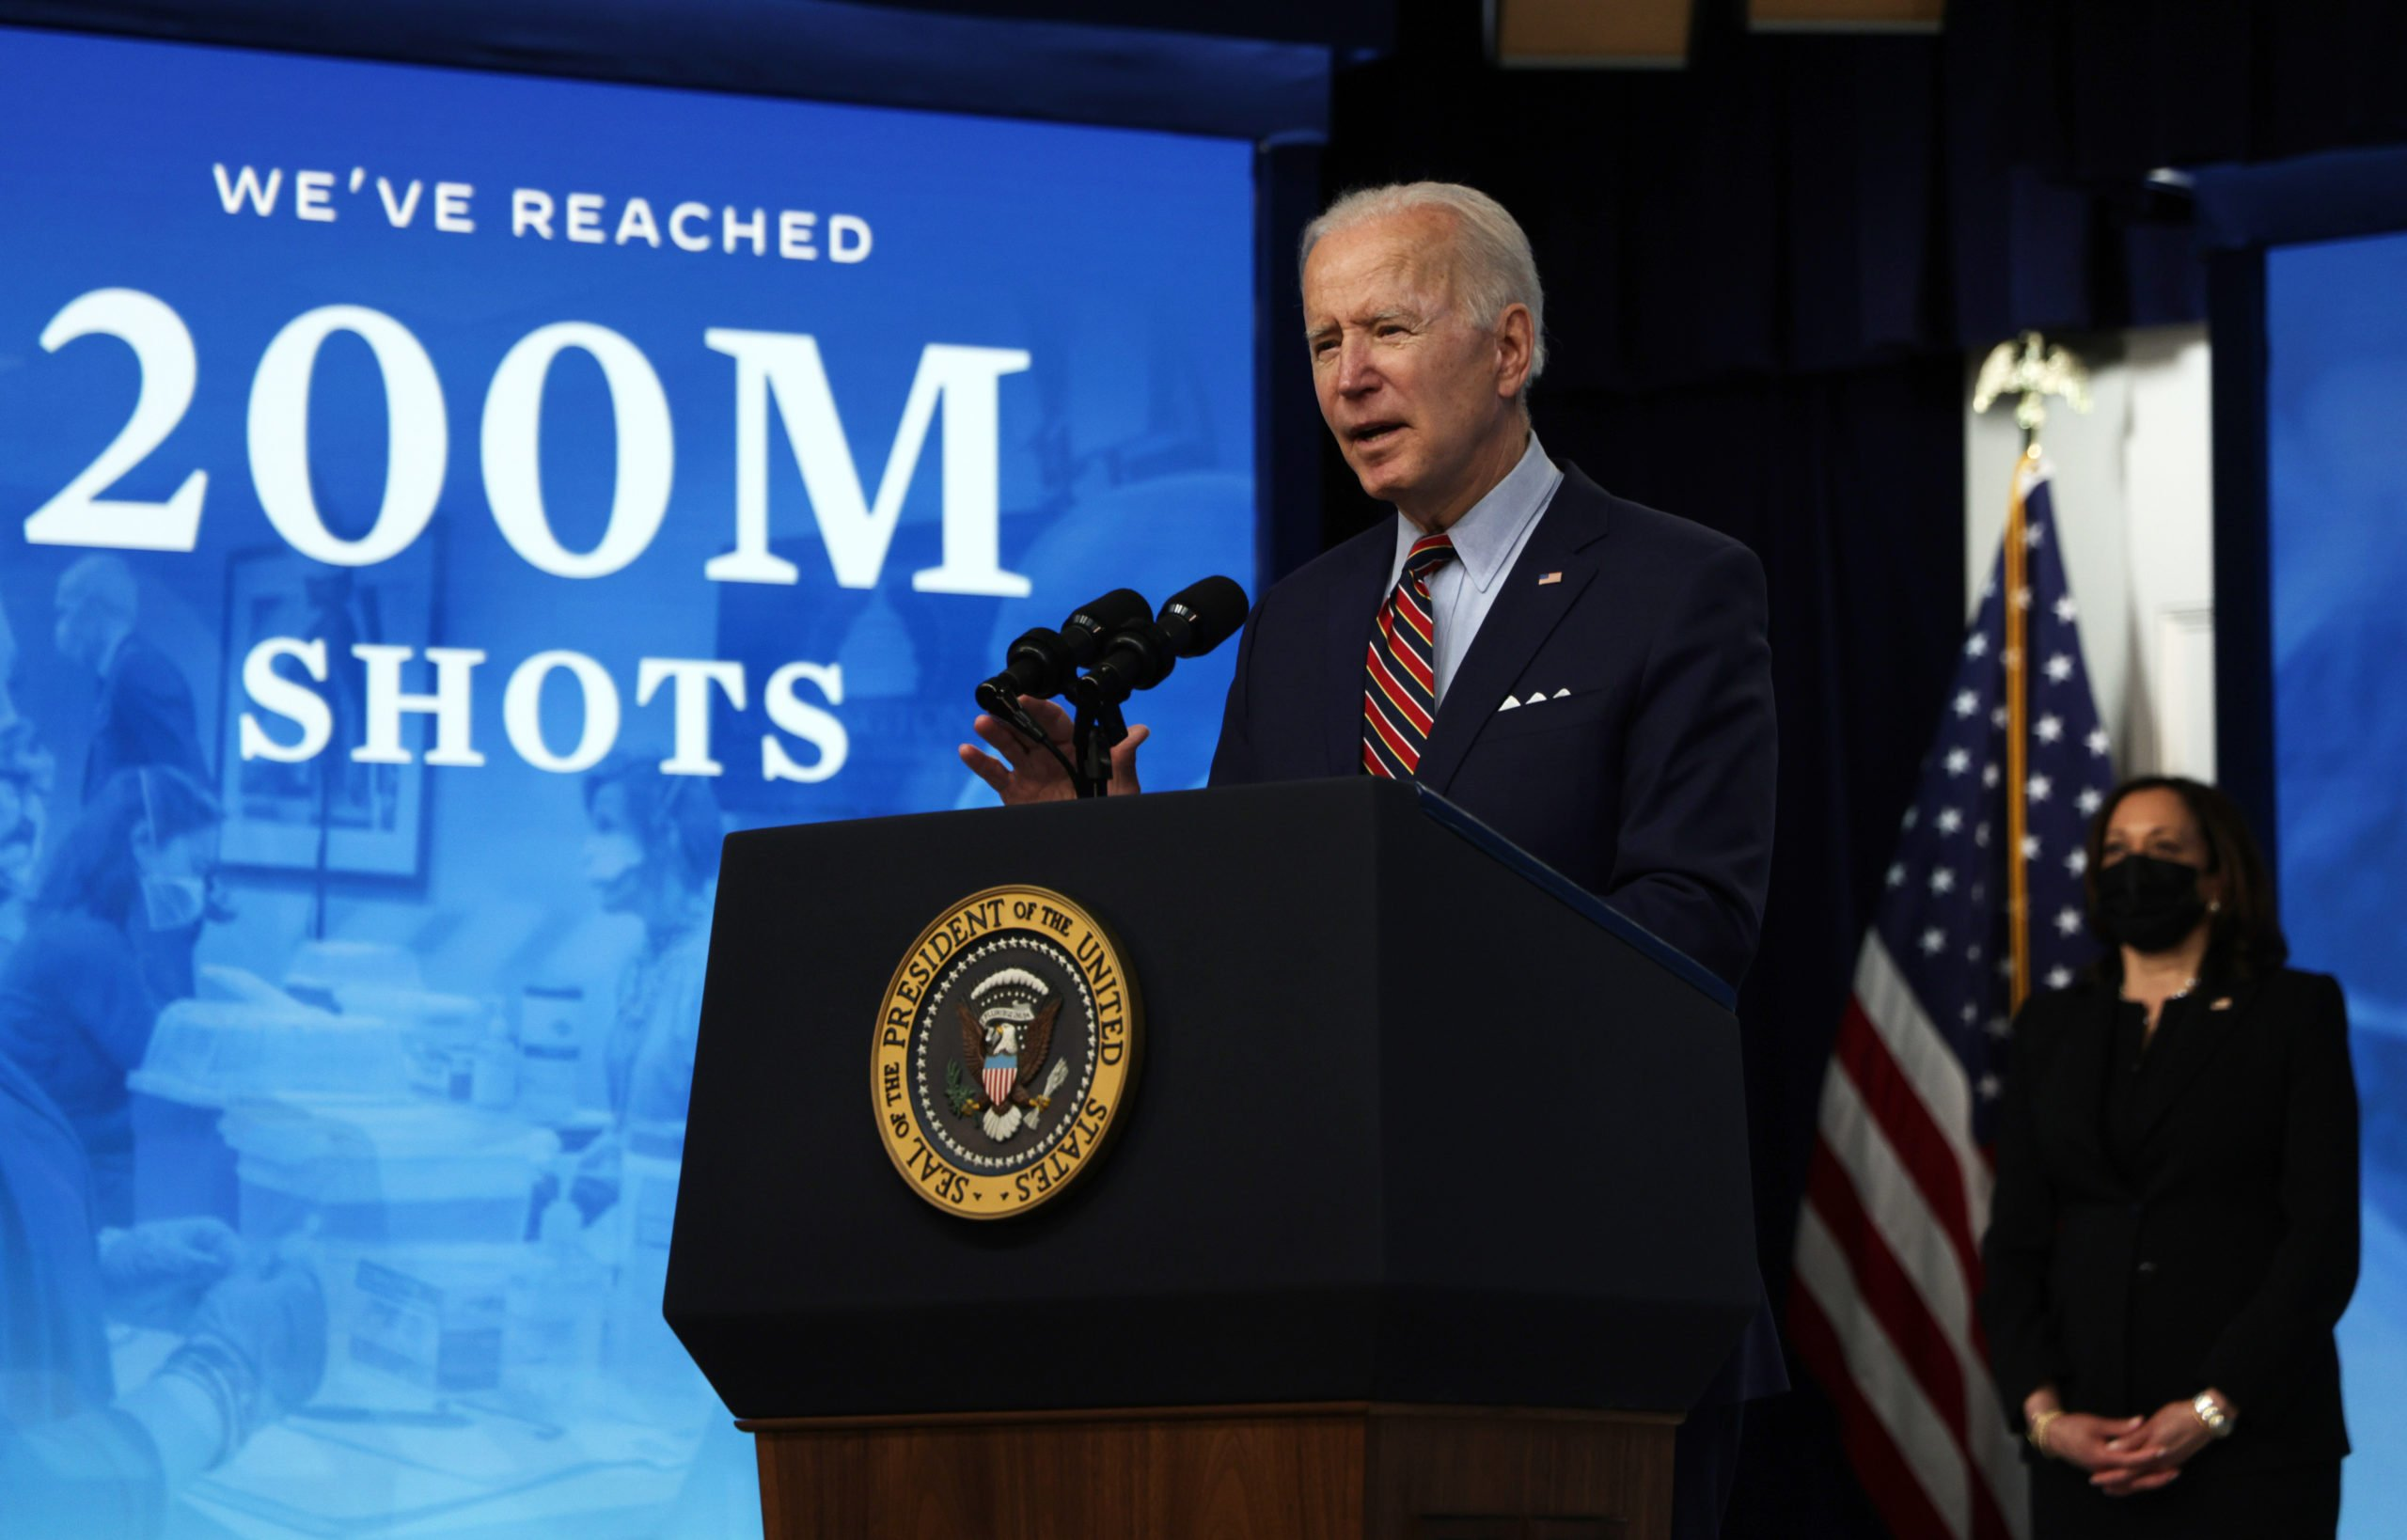 President Joe Biden makes remarks at the White House on Wednesday. (Alex Wong/Getty Images)